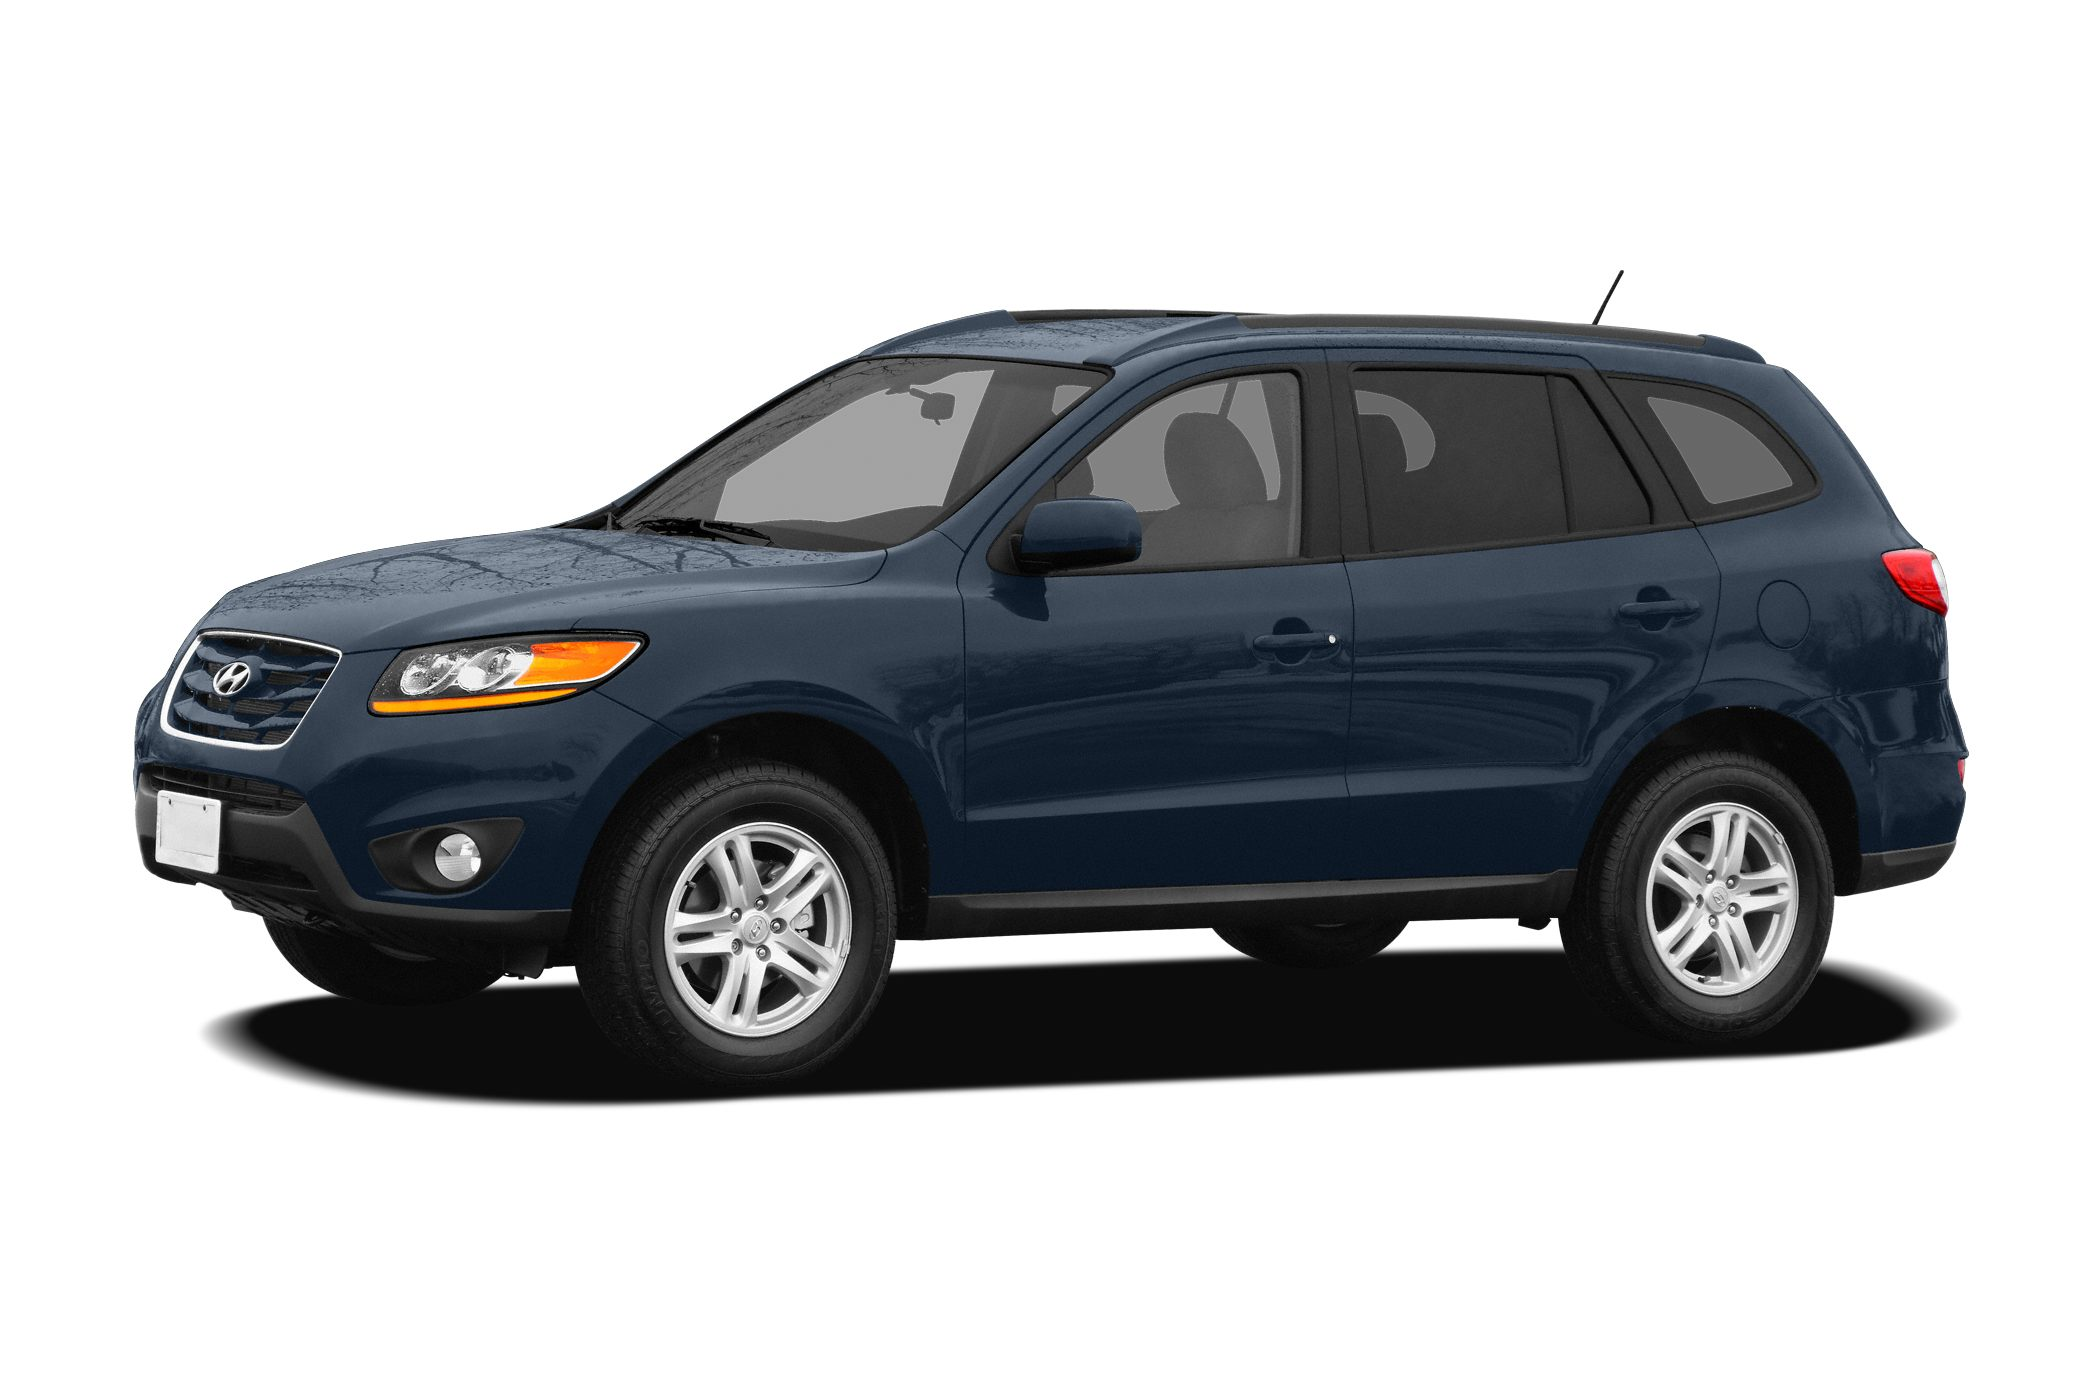 2010 Hyundai Santa Fe Limited SUV for sale in Lancaster for $16,977 with 72,400 miles